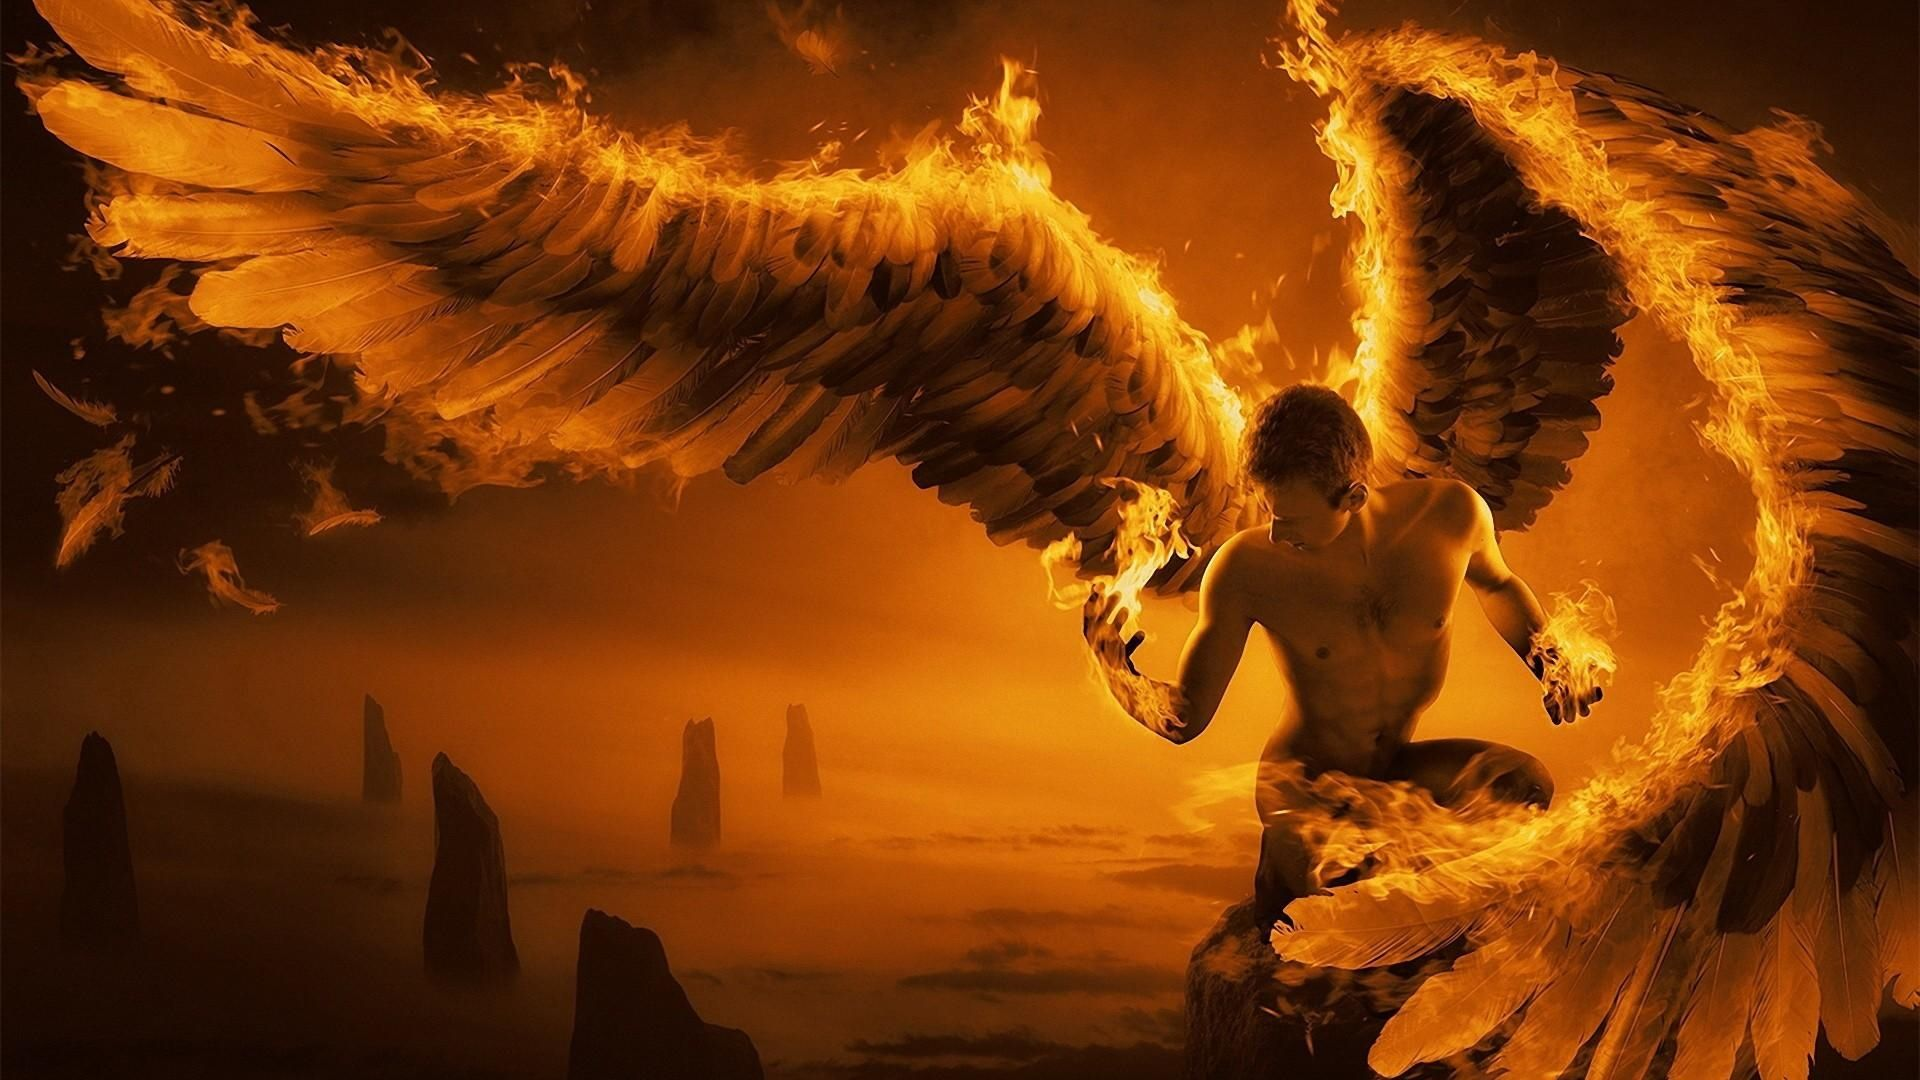 Full Hd 1080p Angel Wallpapers Hd Desktop Backgrounds HD Wallpapers Download Free Images Wallpaper [1000image.com]